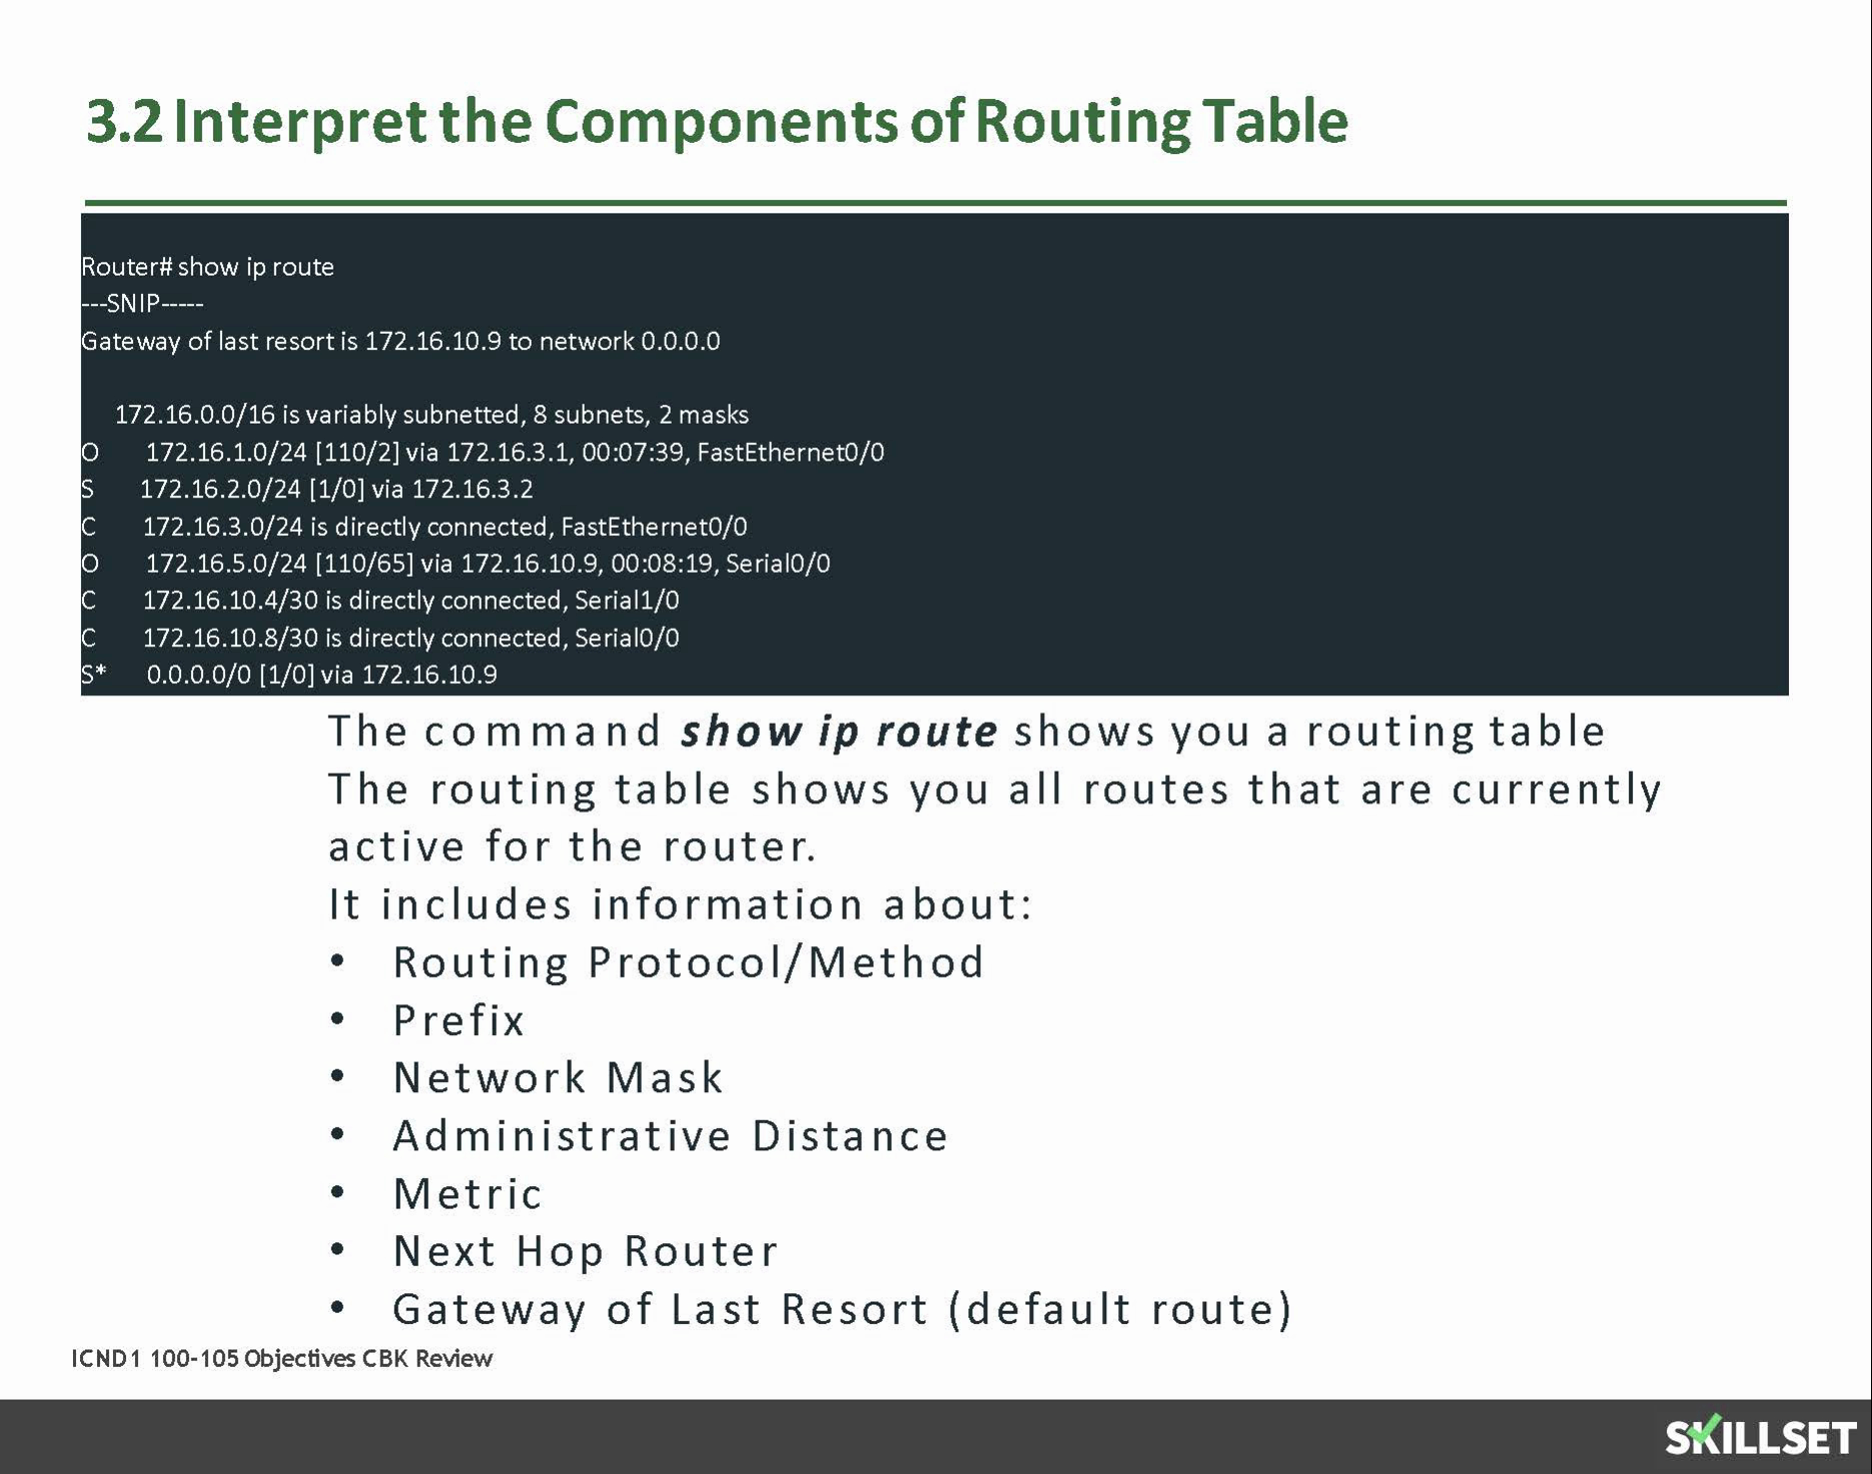 3.2 Interpret the components of routing table